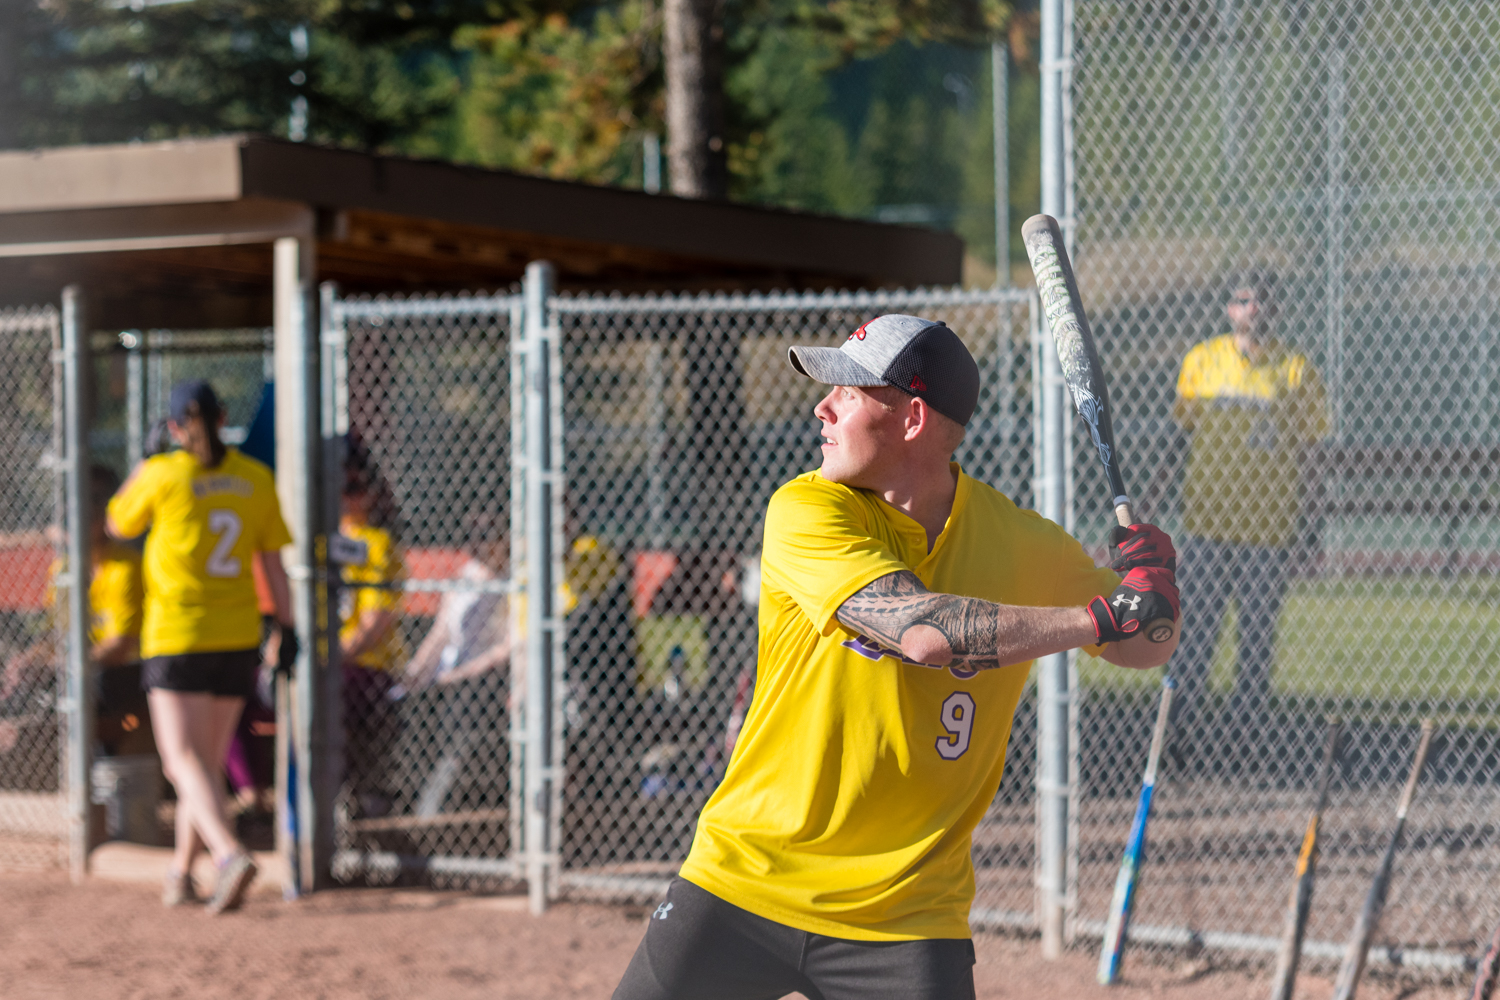 2017 08 22 Softball Playoffs 1-158.jpg